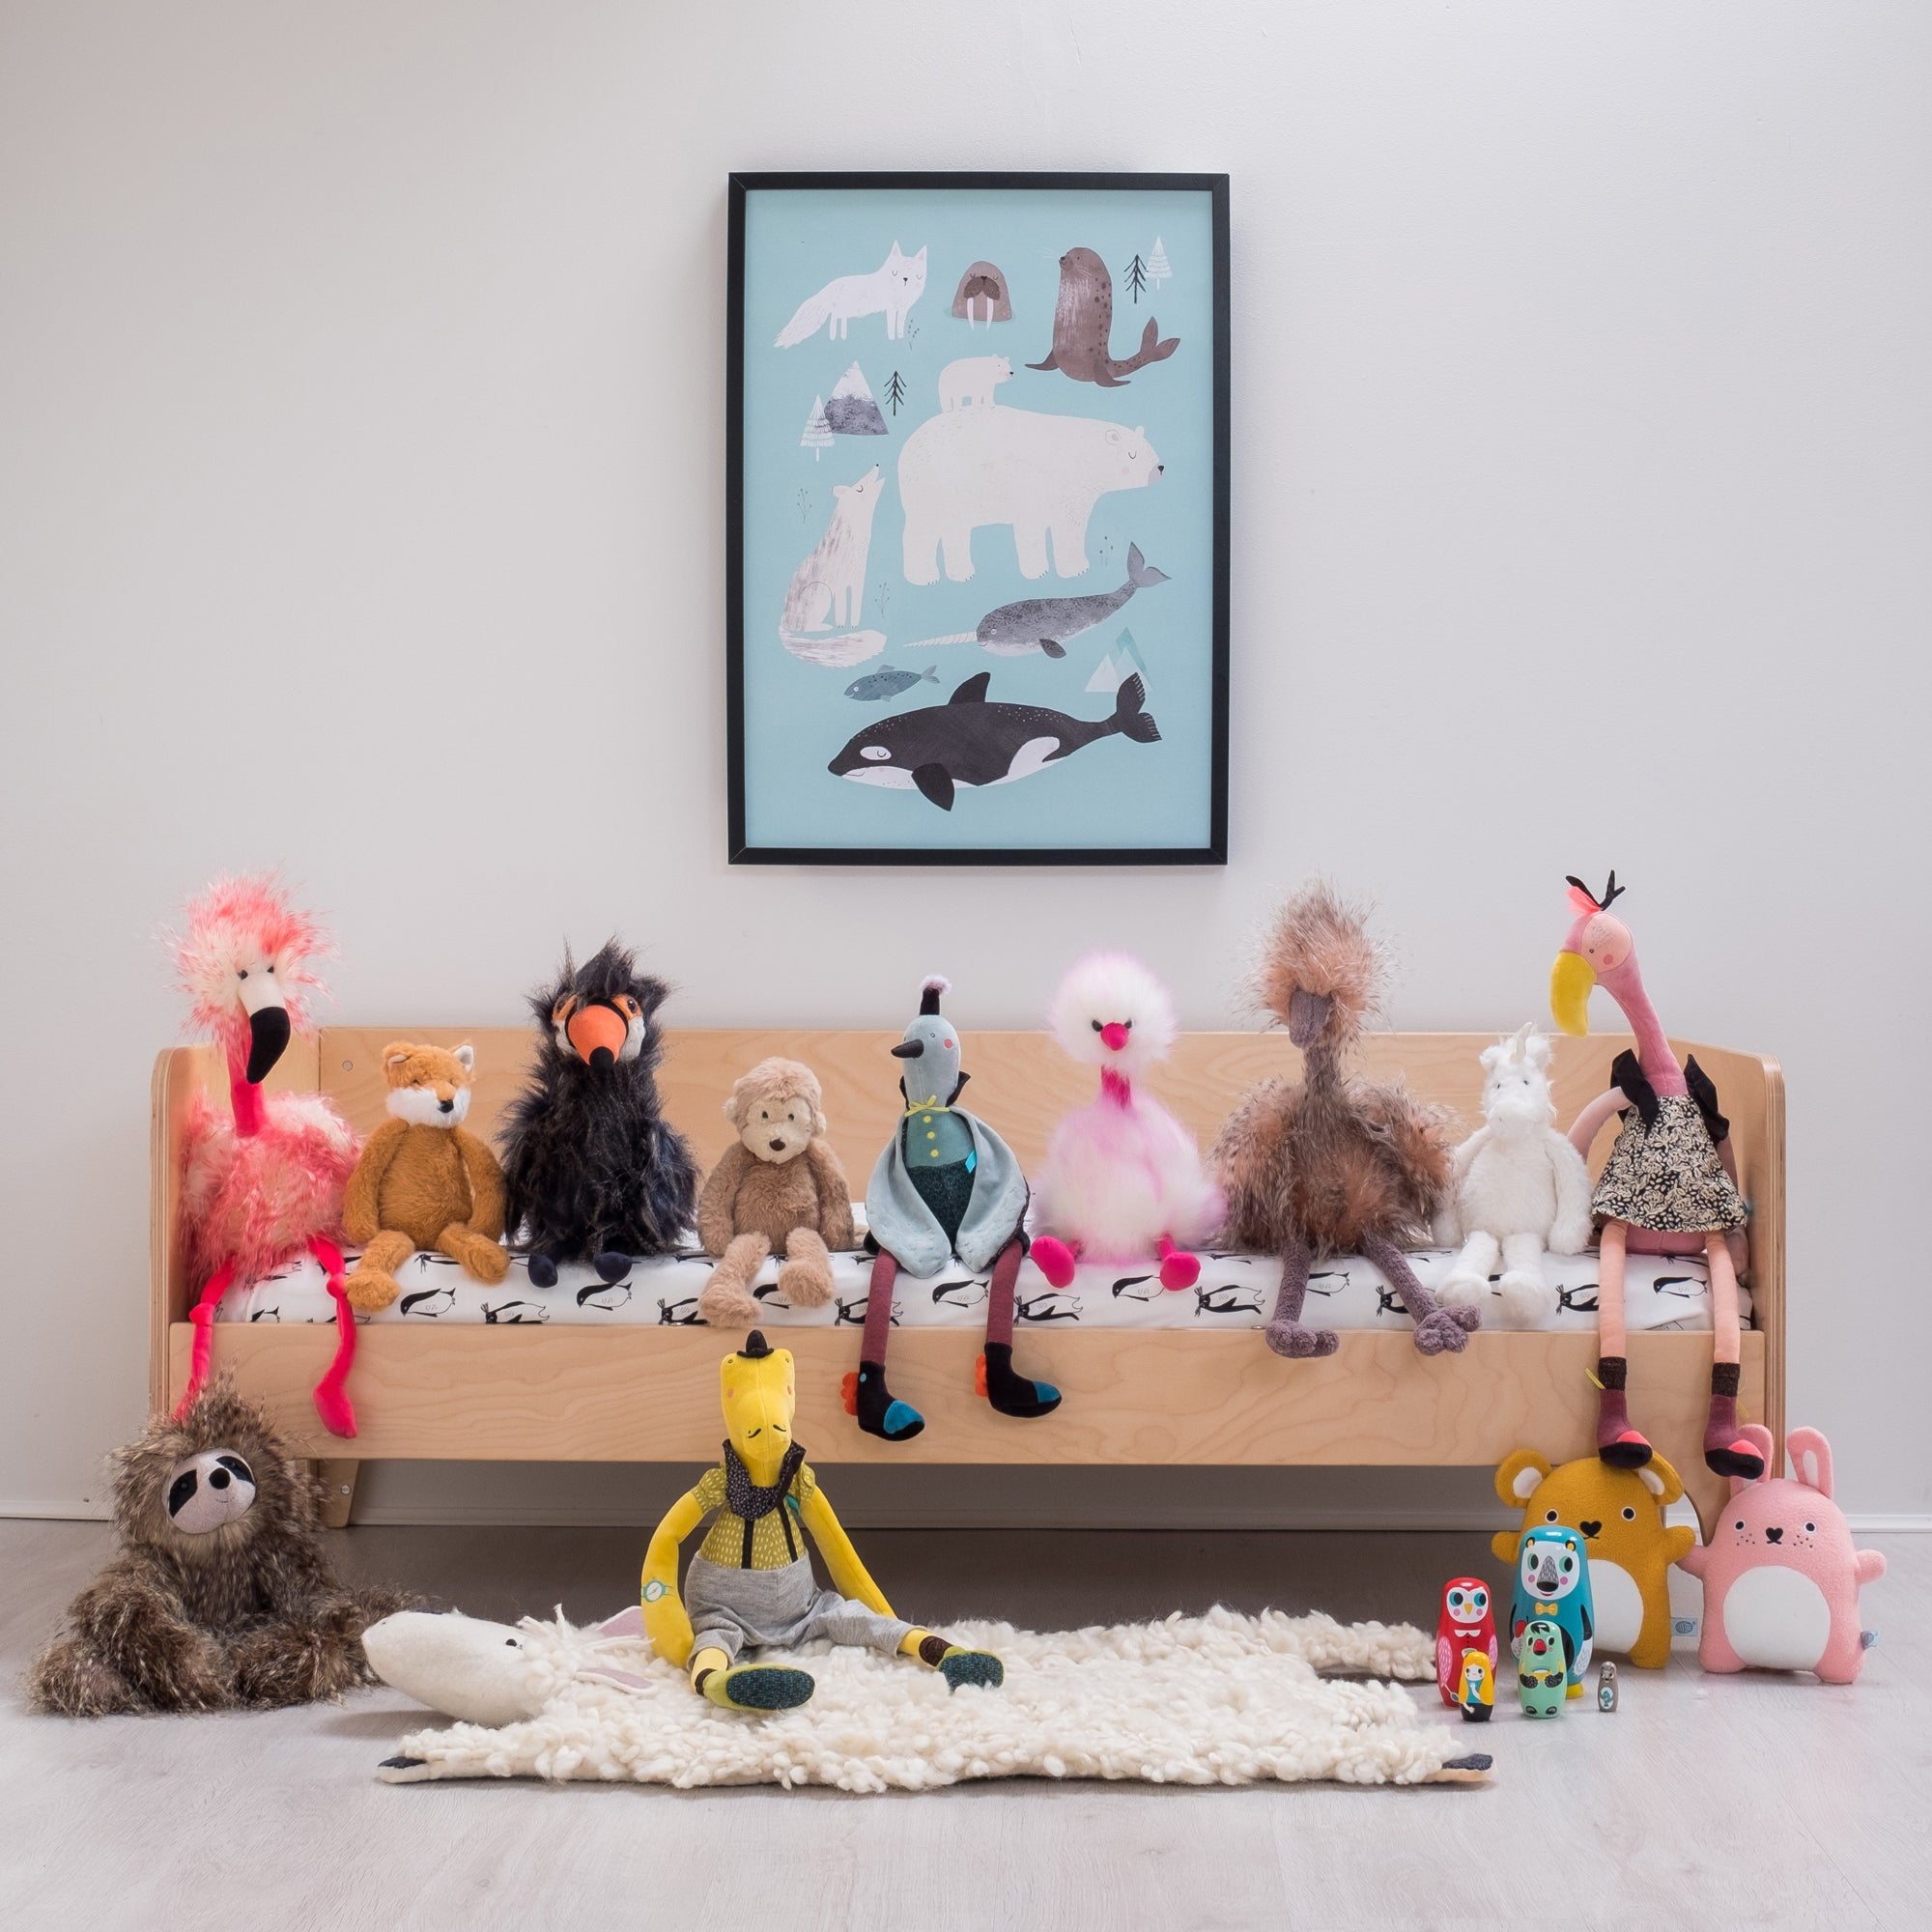 Oeuf NYC Toddler Bed and Toys, styled by Bobby Rabbit.